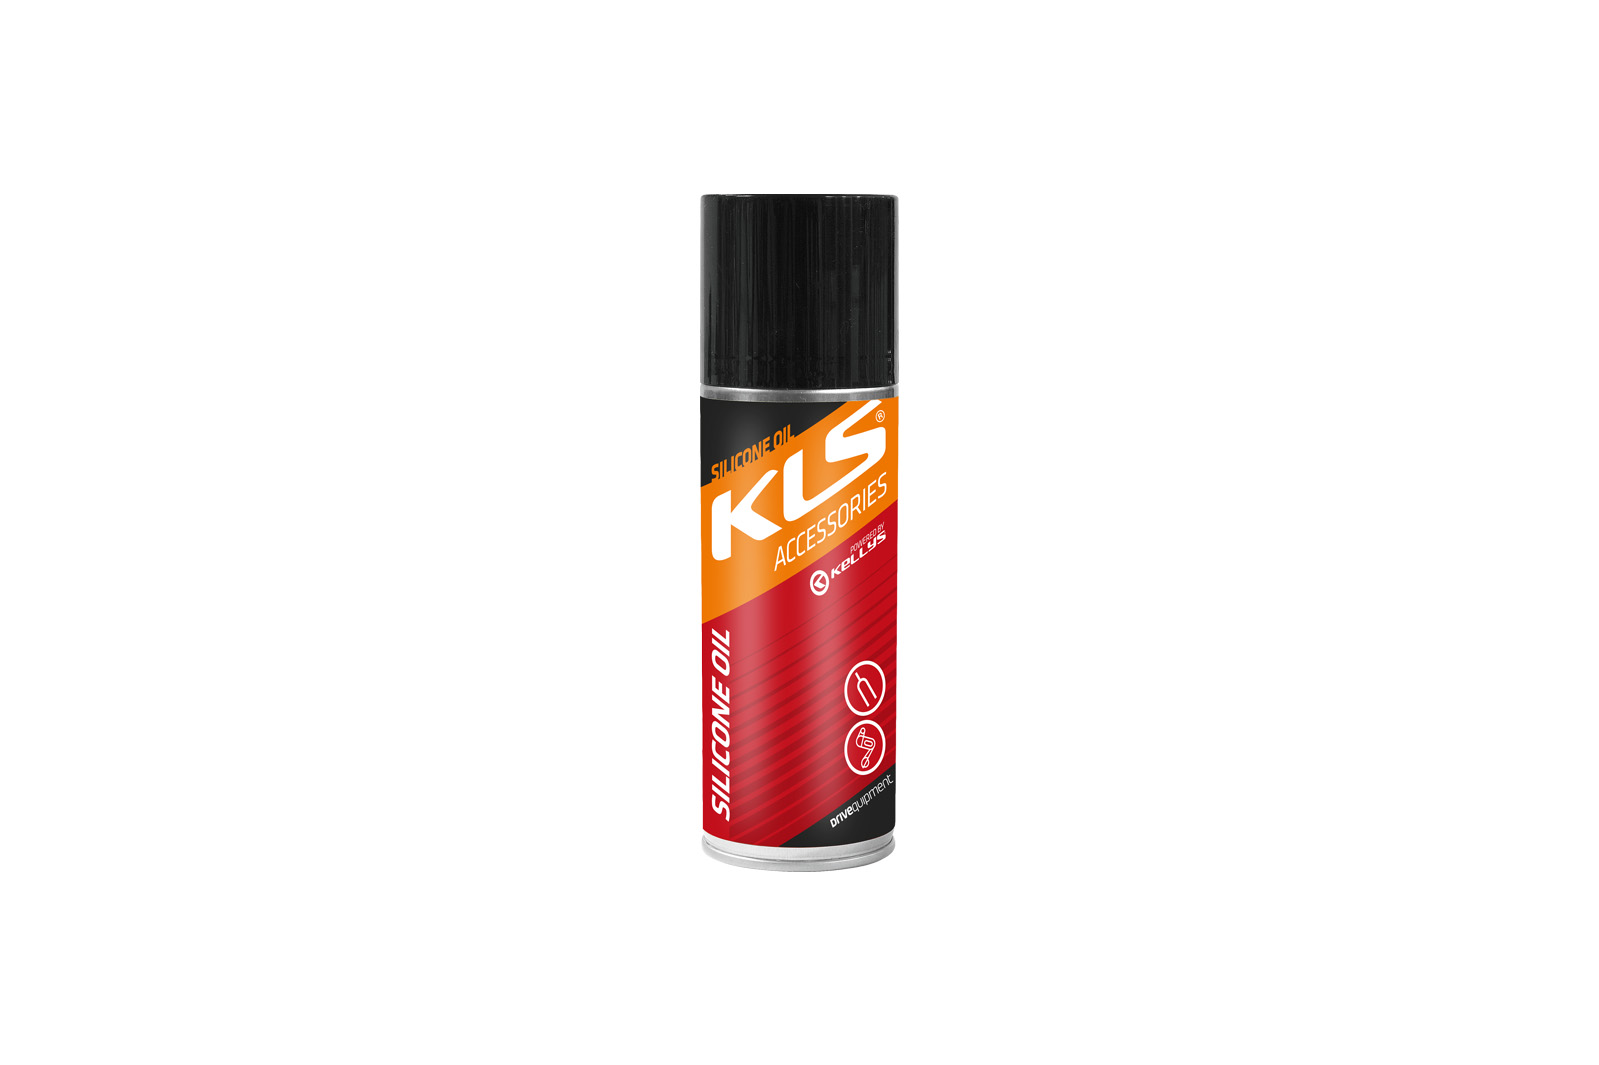 KLS SILICONE OIL Spray 200 ml - KLS SILICONE OIL Spray 200 ml